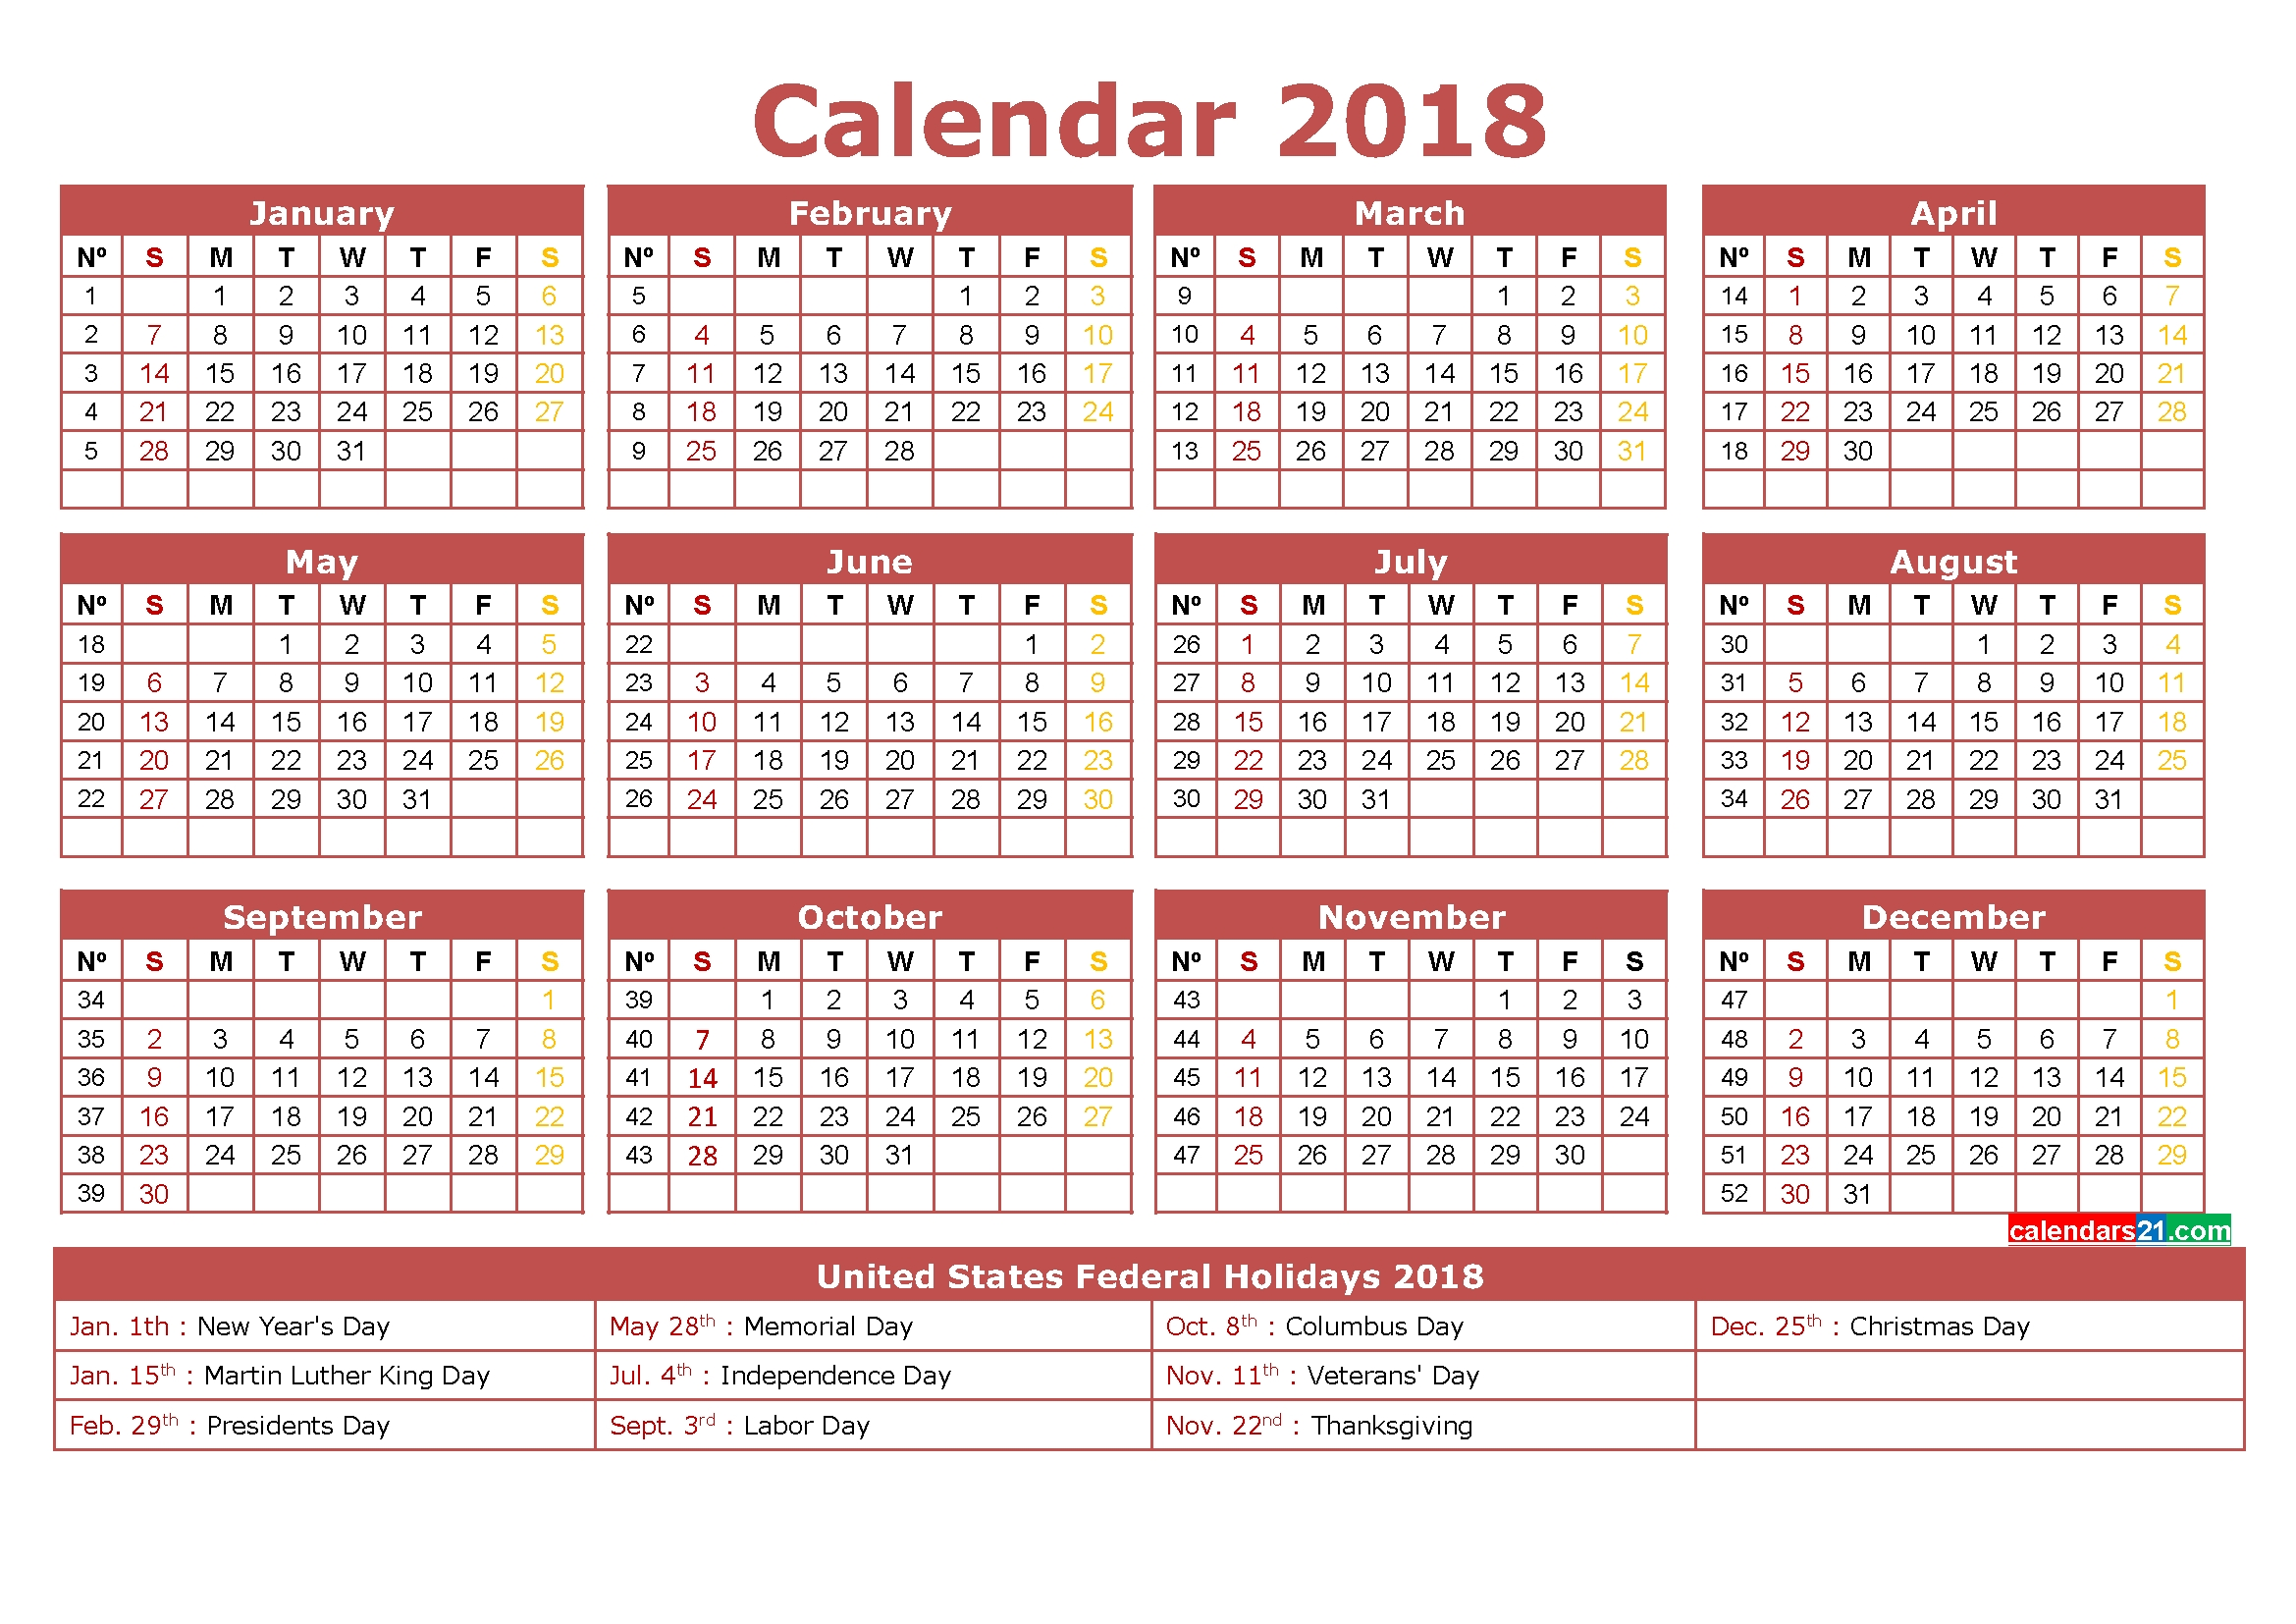 2018 Calendar Printable 12 Month In One Page 2019 Simple | Mightymic  12 Month Calendar On One Page